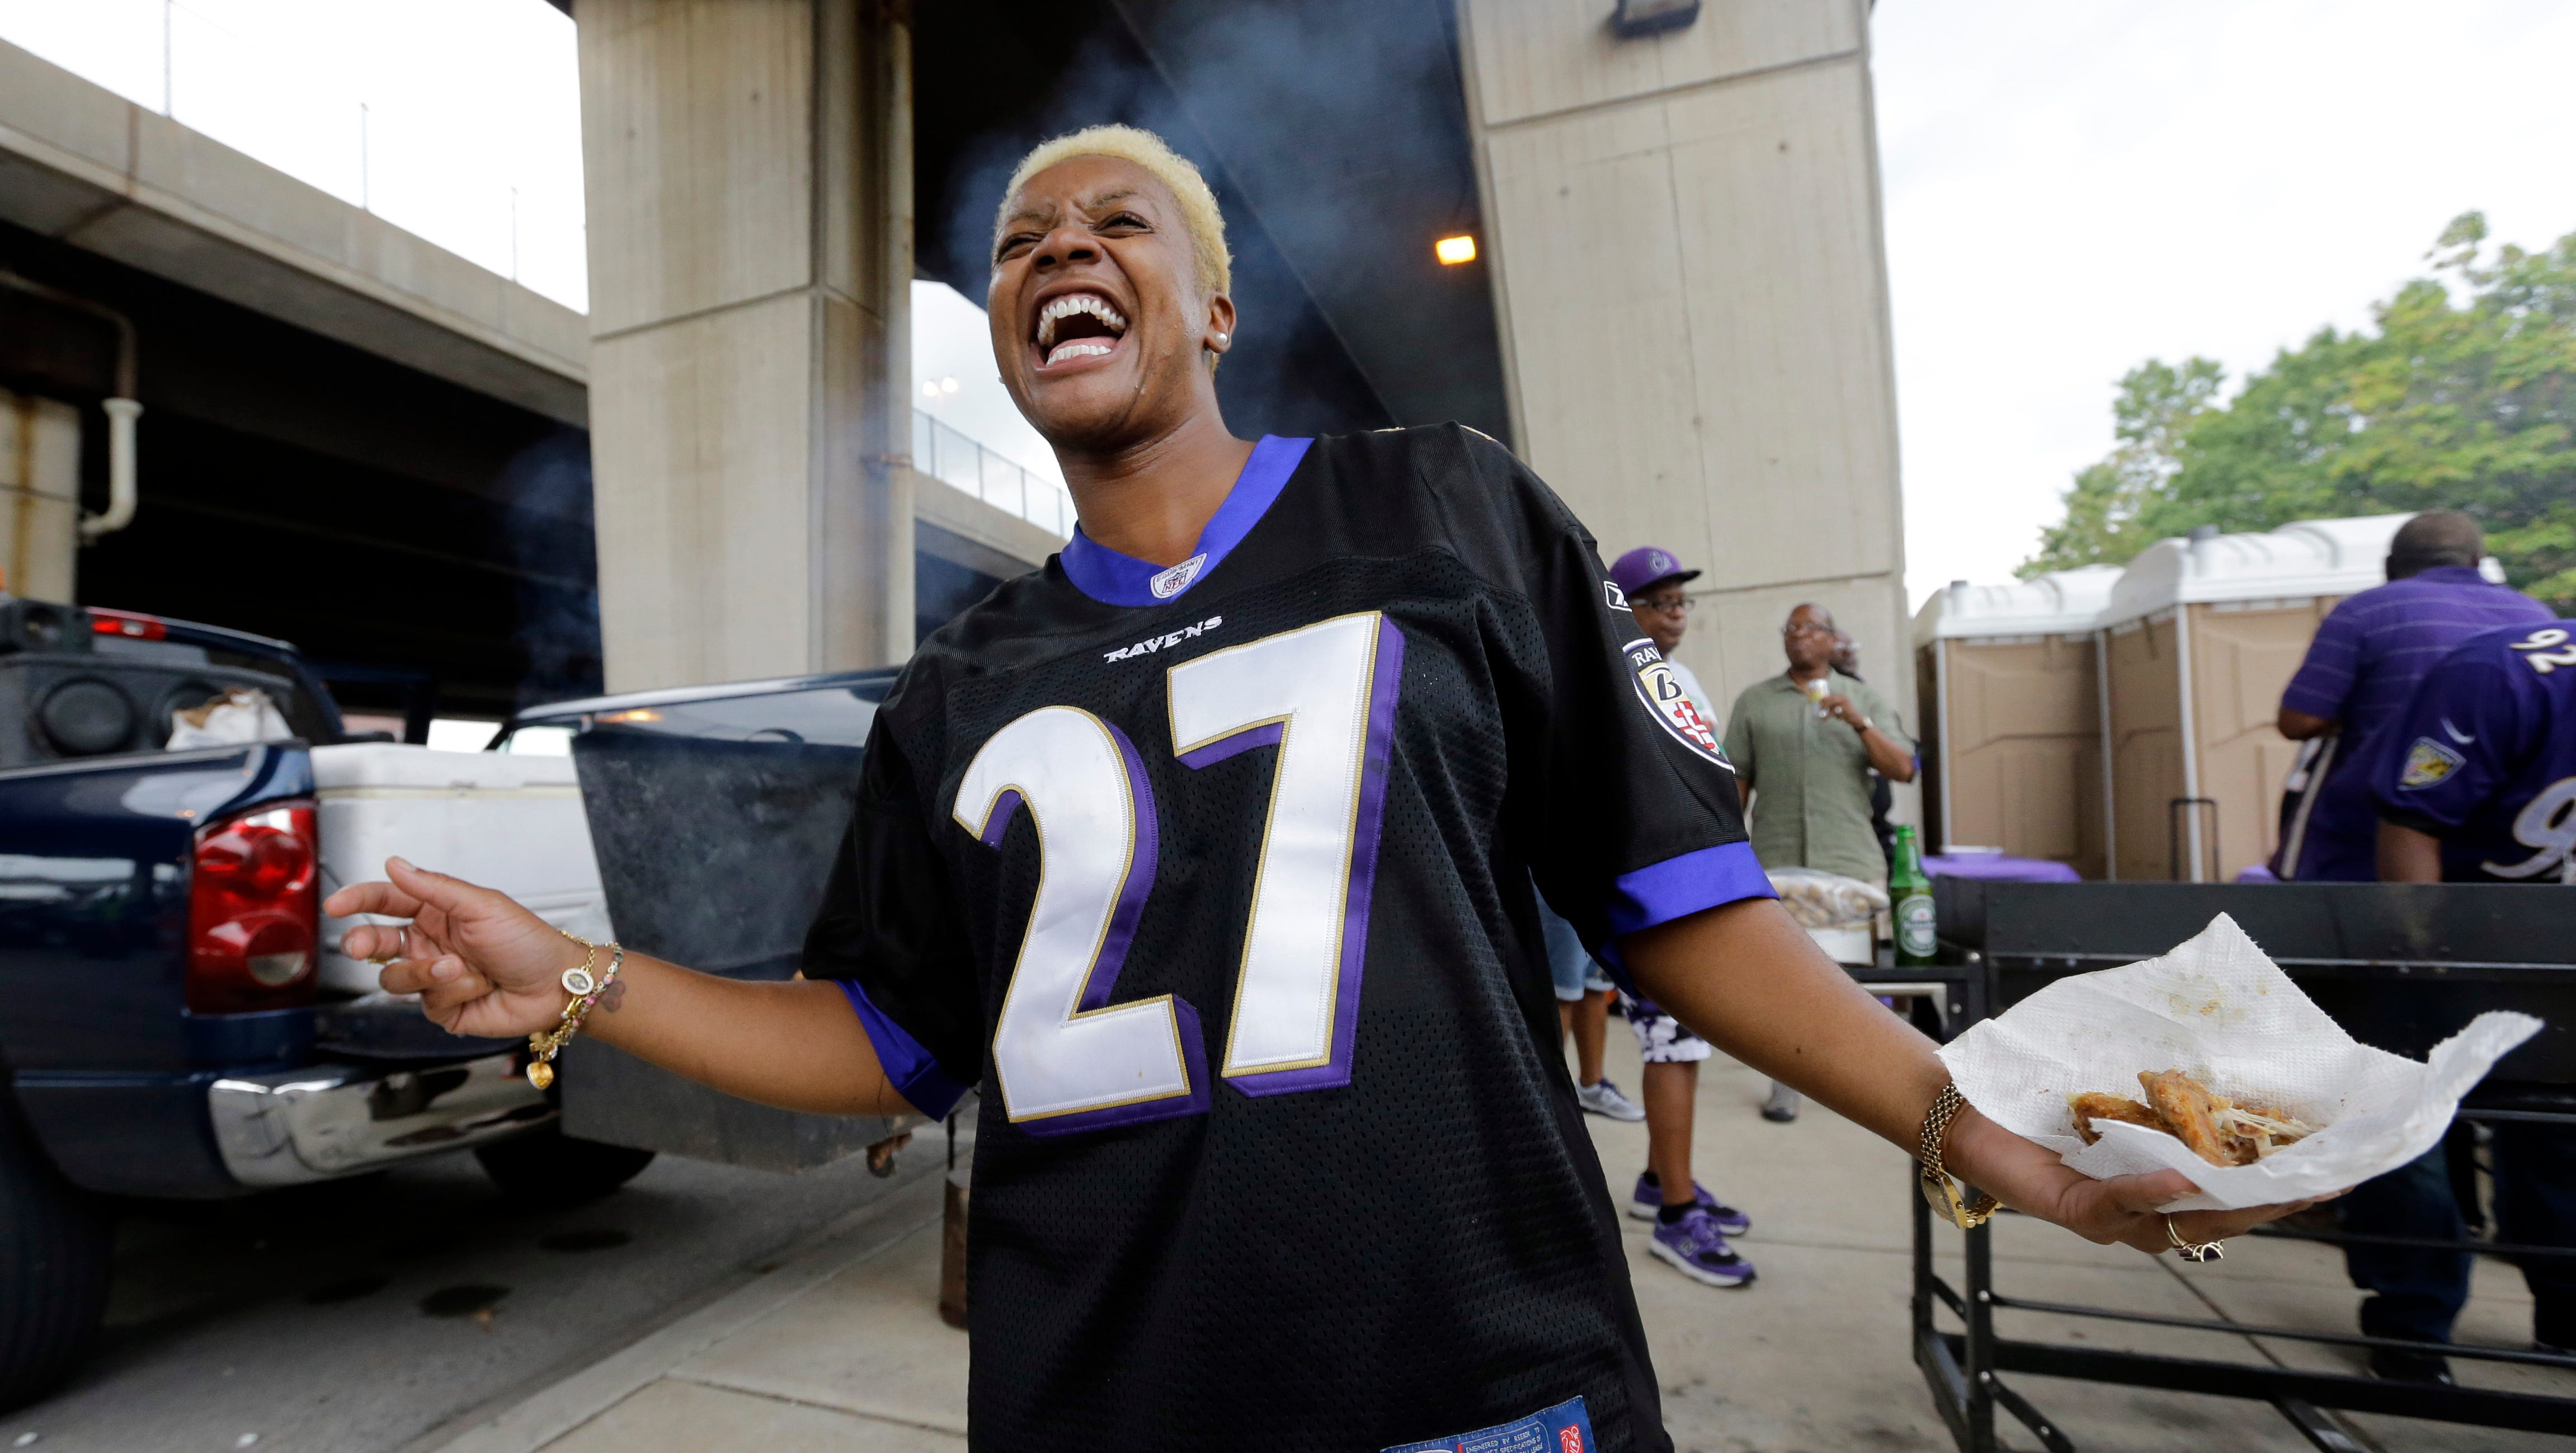 Boivin: Fans wearing Ray Rice jerseys? Disgusting